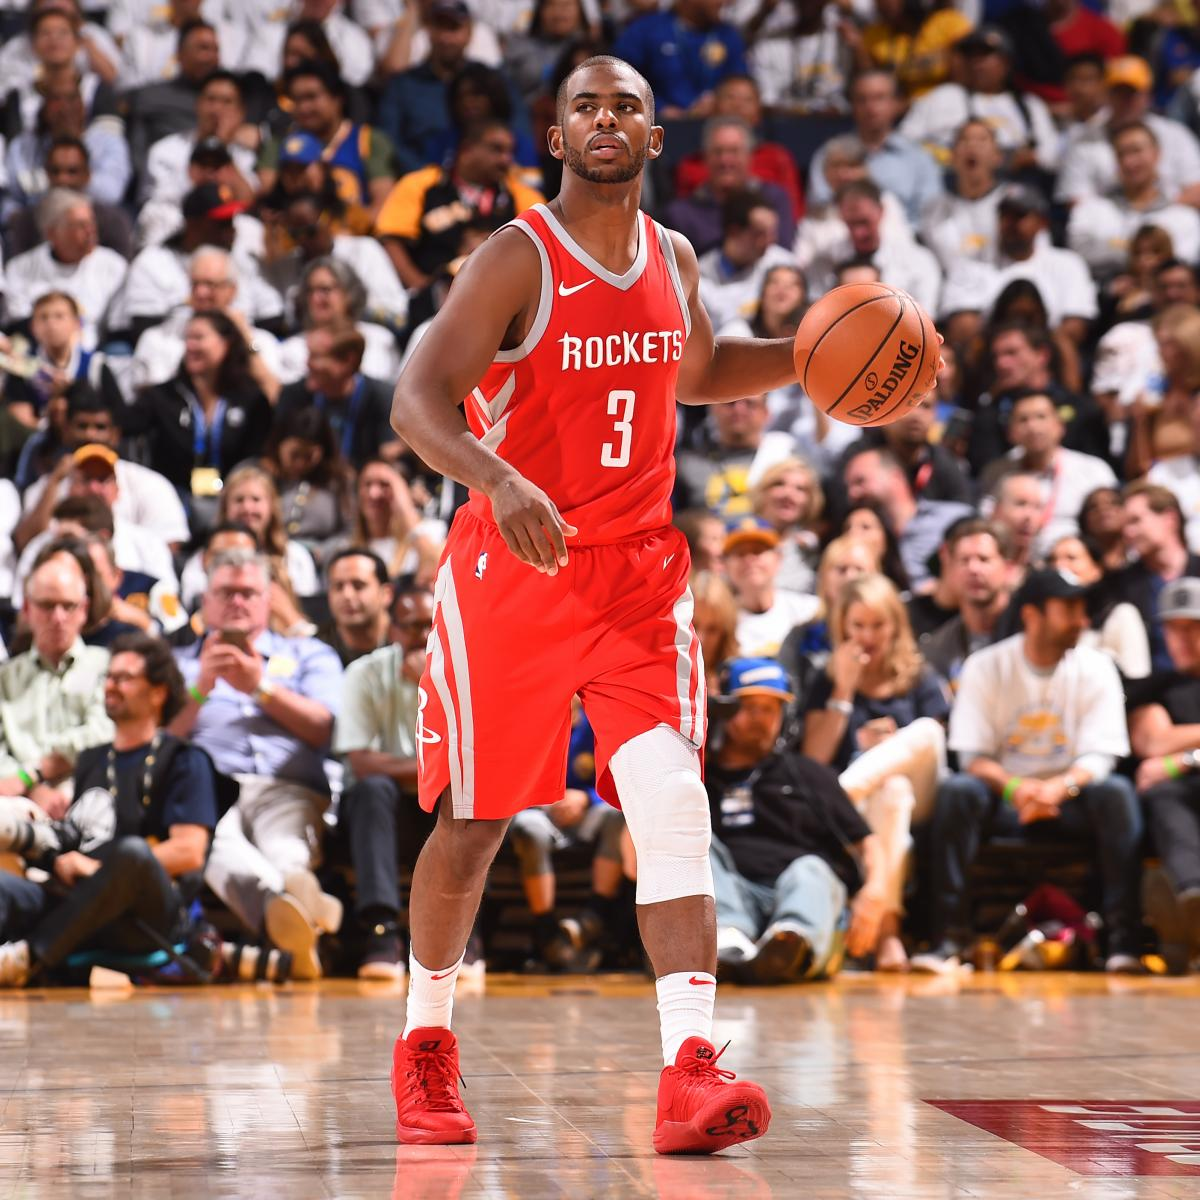 Rockets Vs Warriors Head To Head This Season: Chris Paul Will Not Play Vs. Kings After Injuring Knee